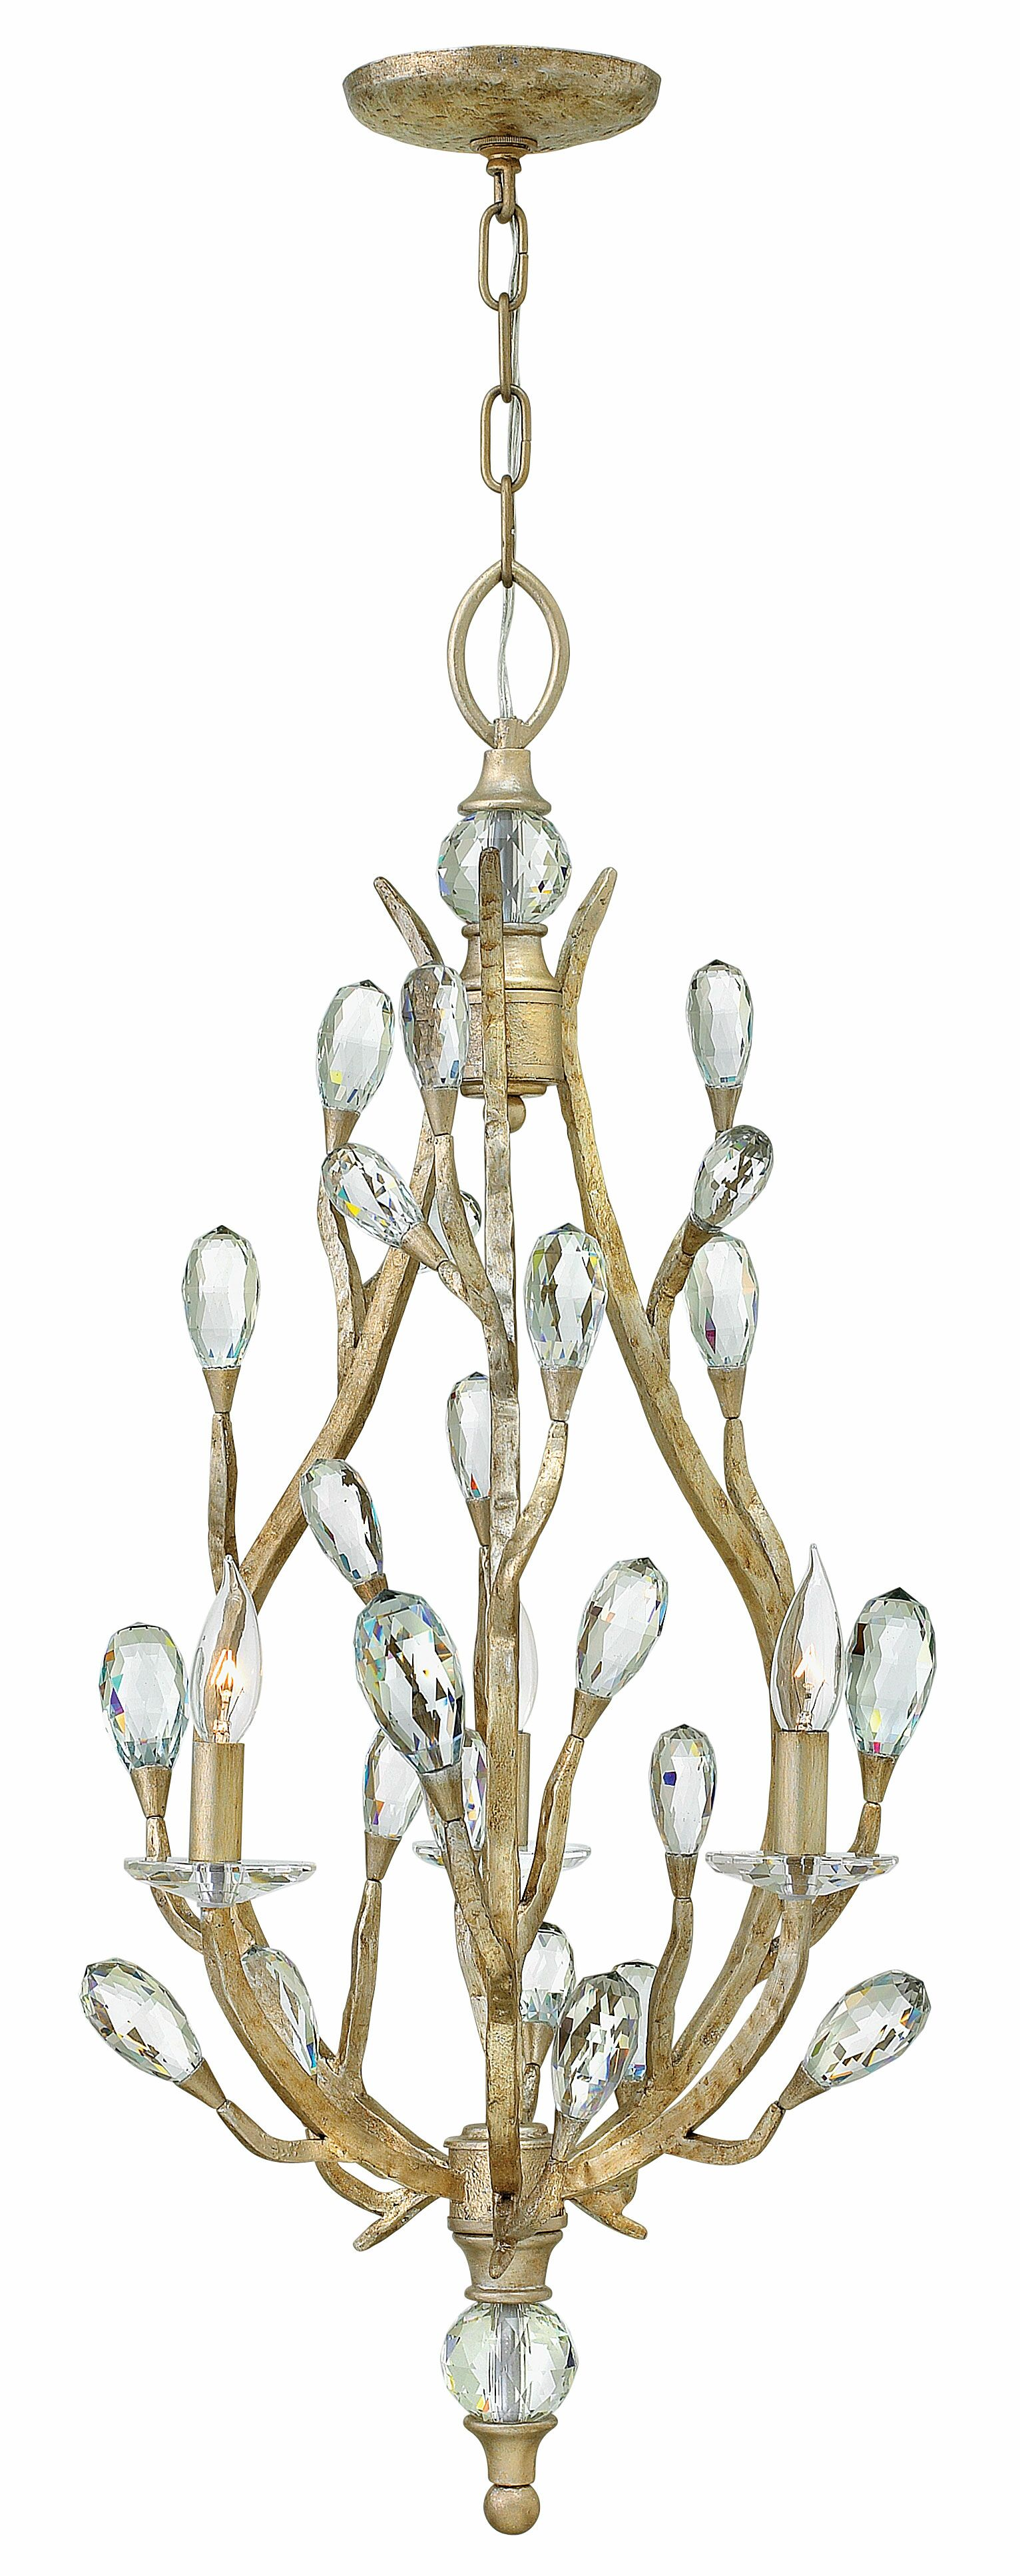 Diandre 3-Light Candle Style Chandelier